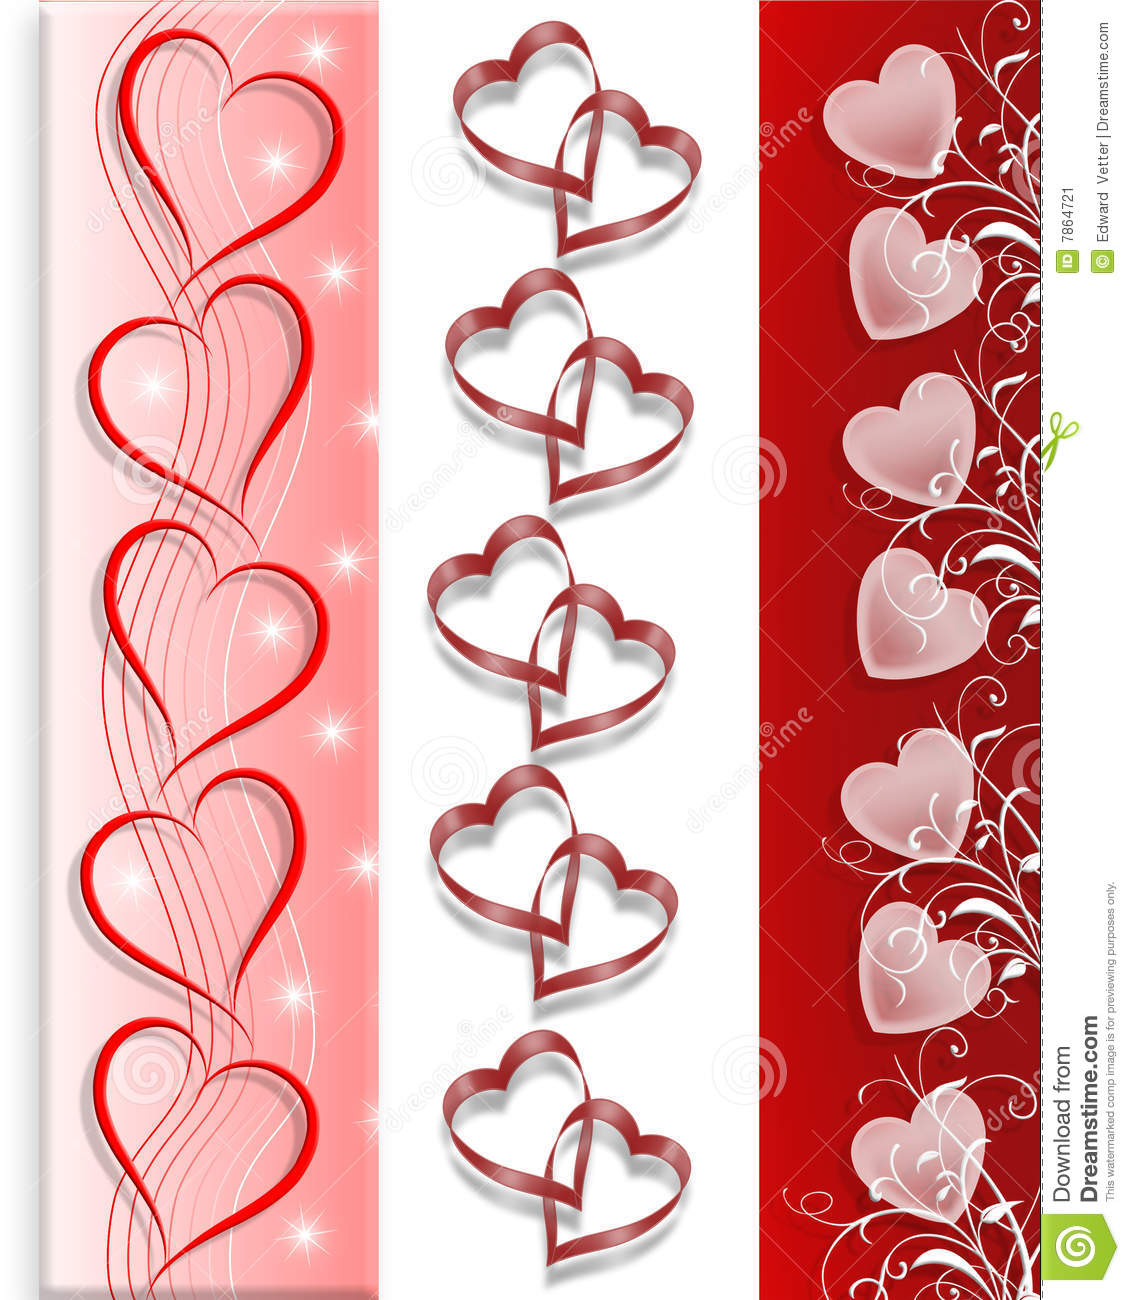 Valentine Hearts Borders in 3 Styles for cards letter invitation or ...